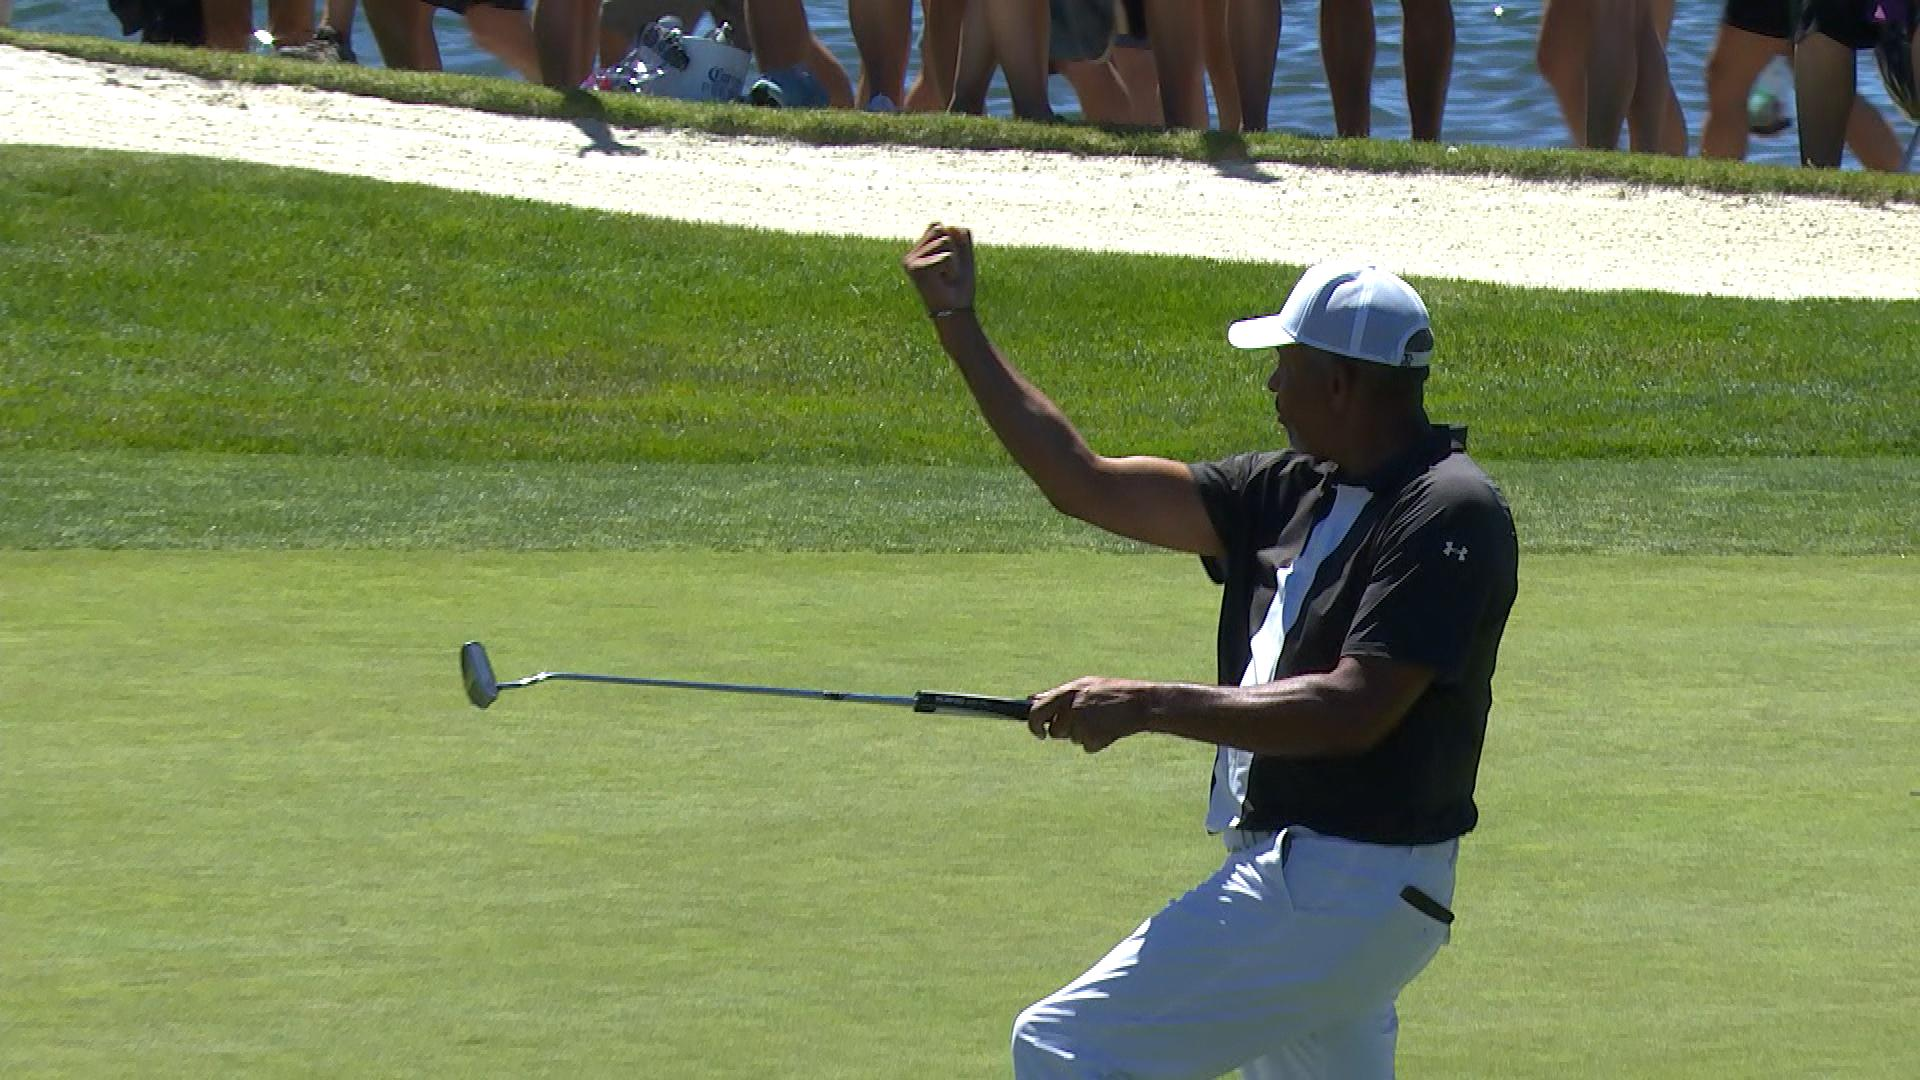 American Century Championship: Dell Curry sinks long putt to extend